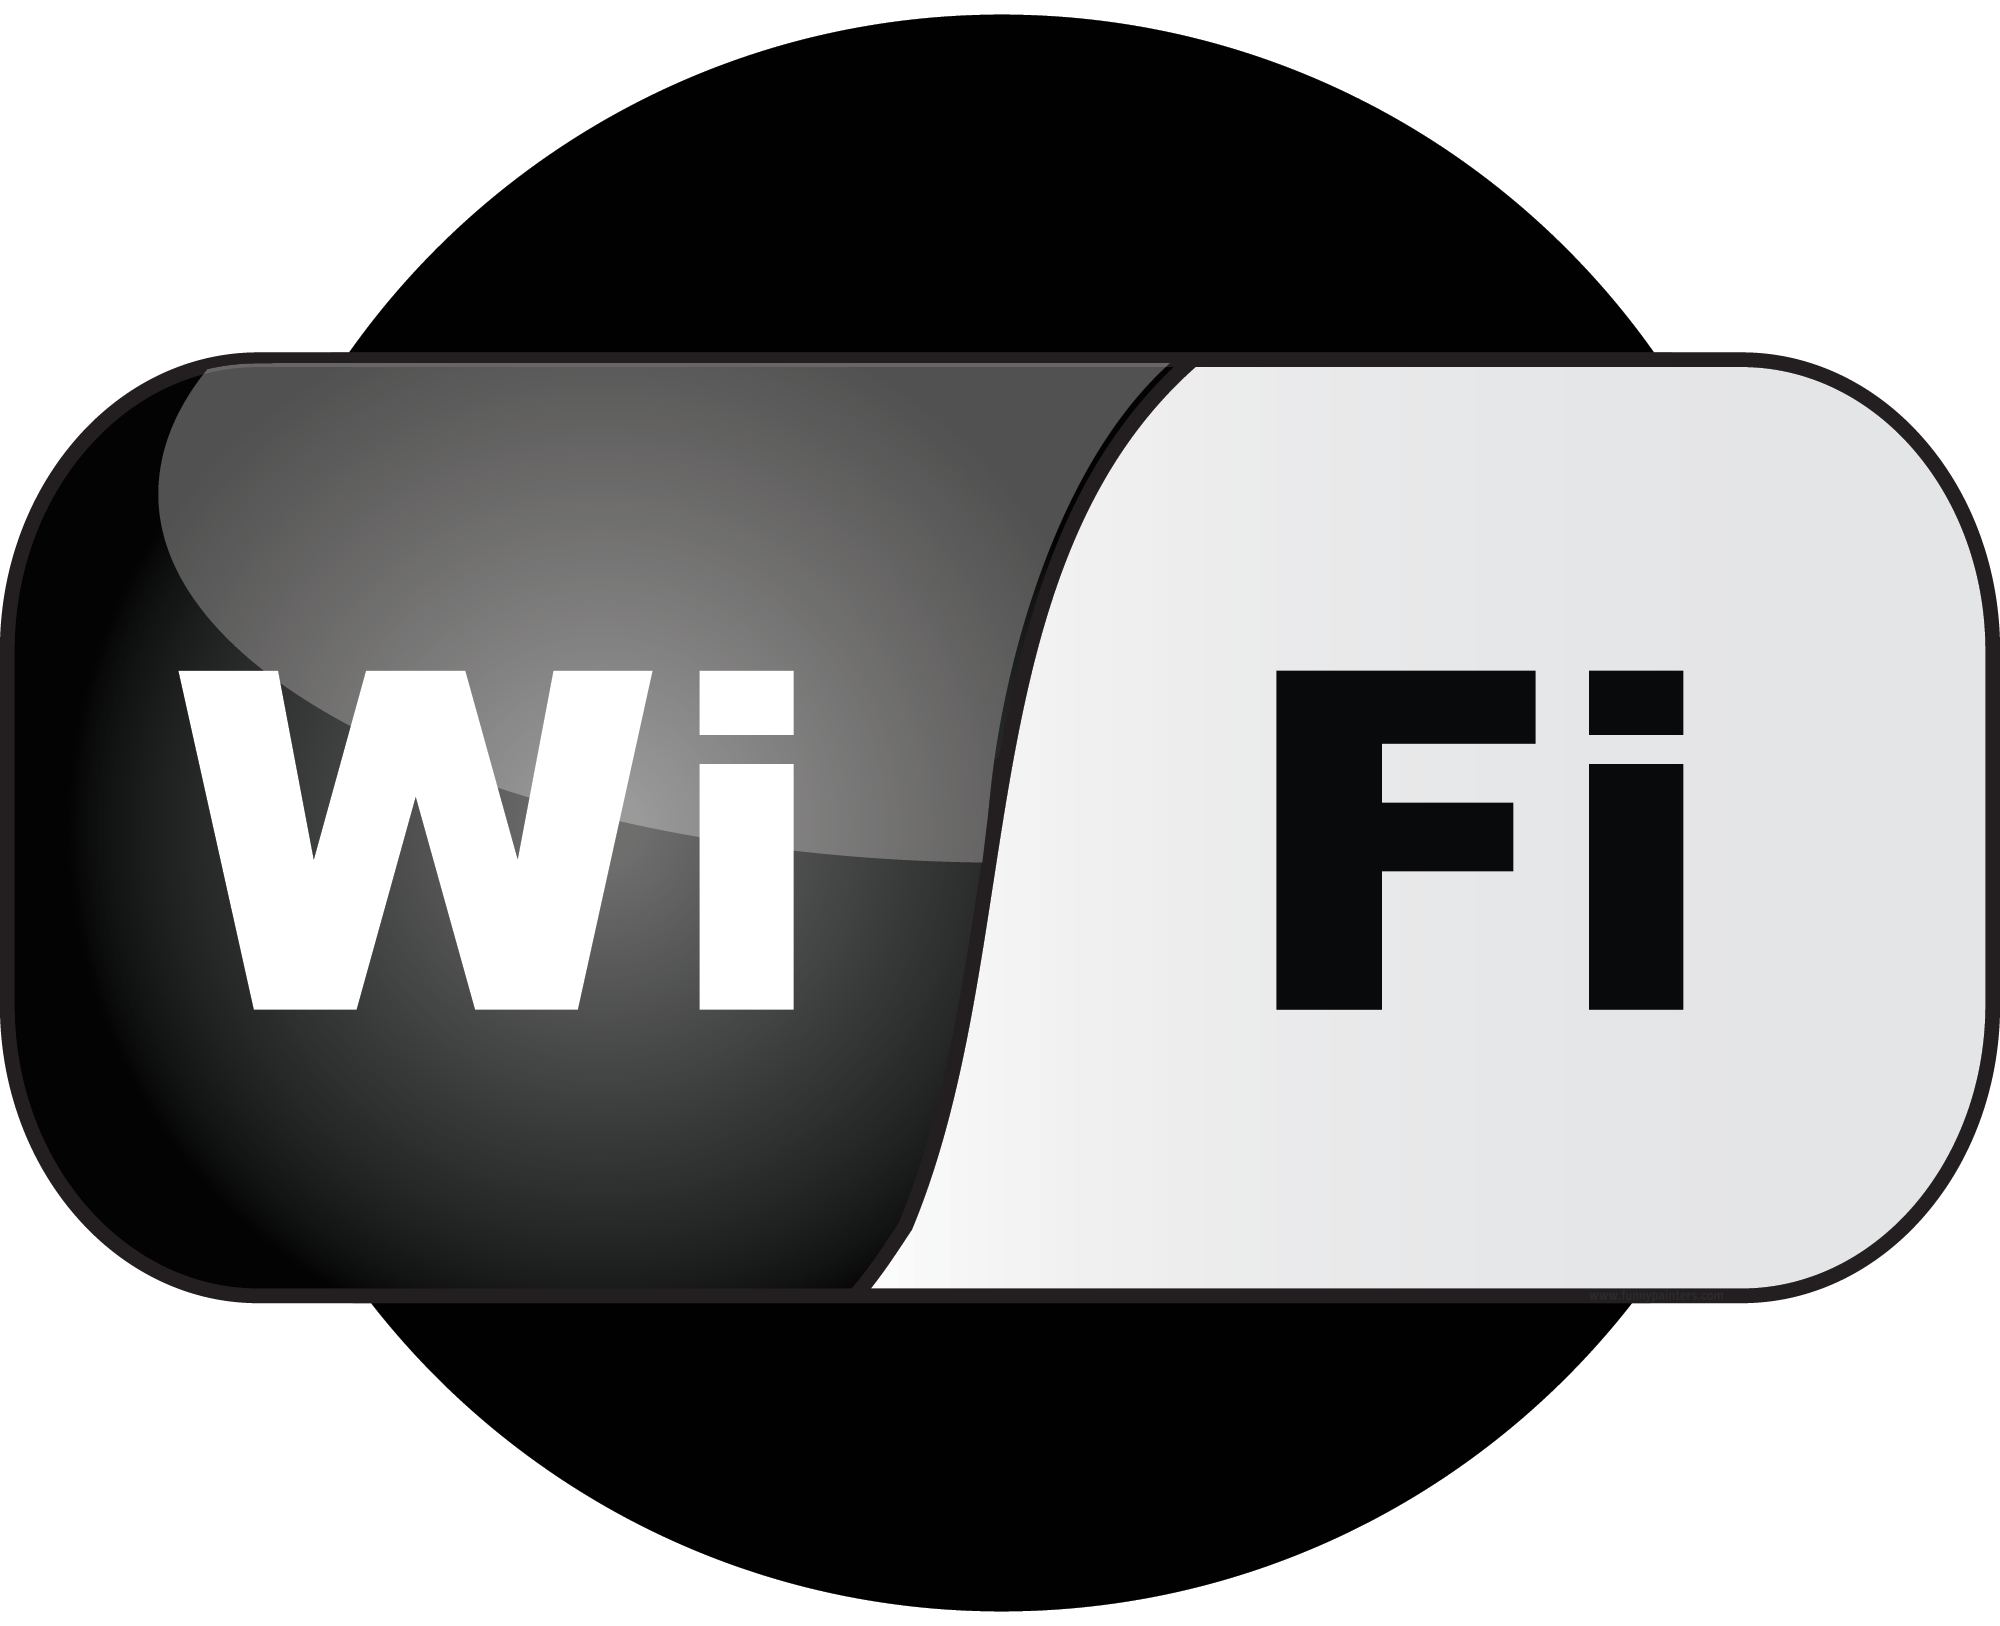 WiFi Black Logo Vector Wallpaper